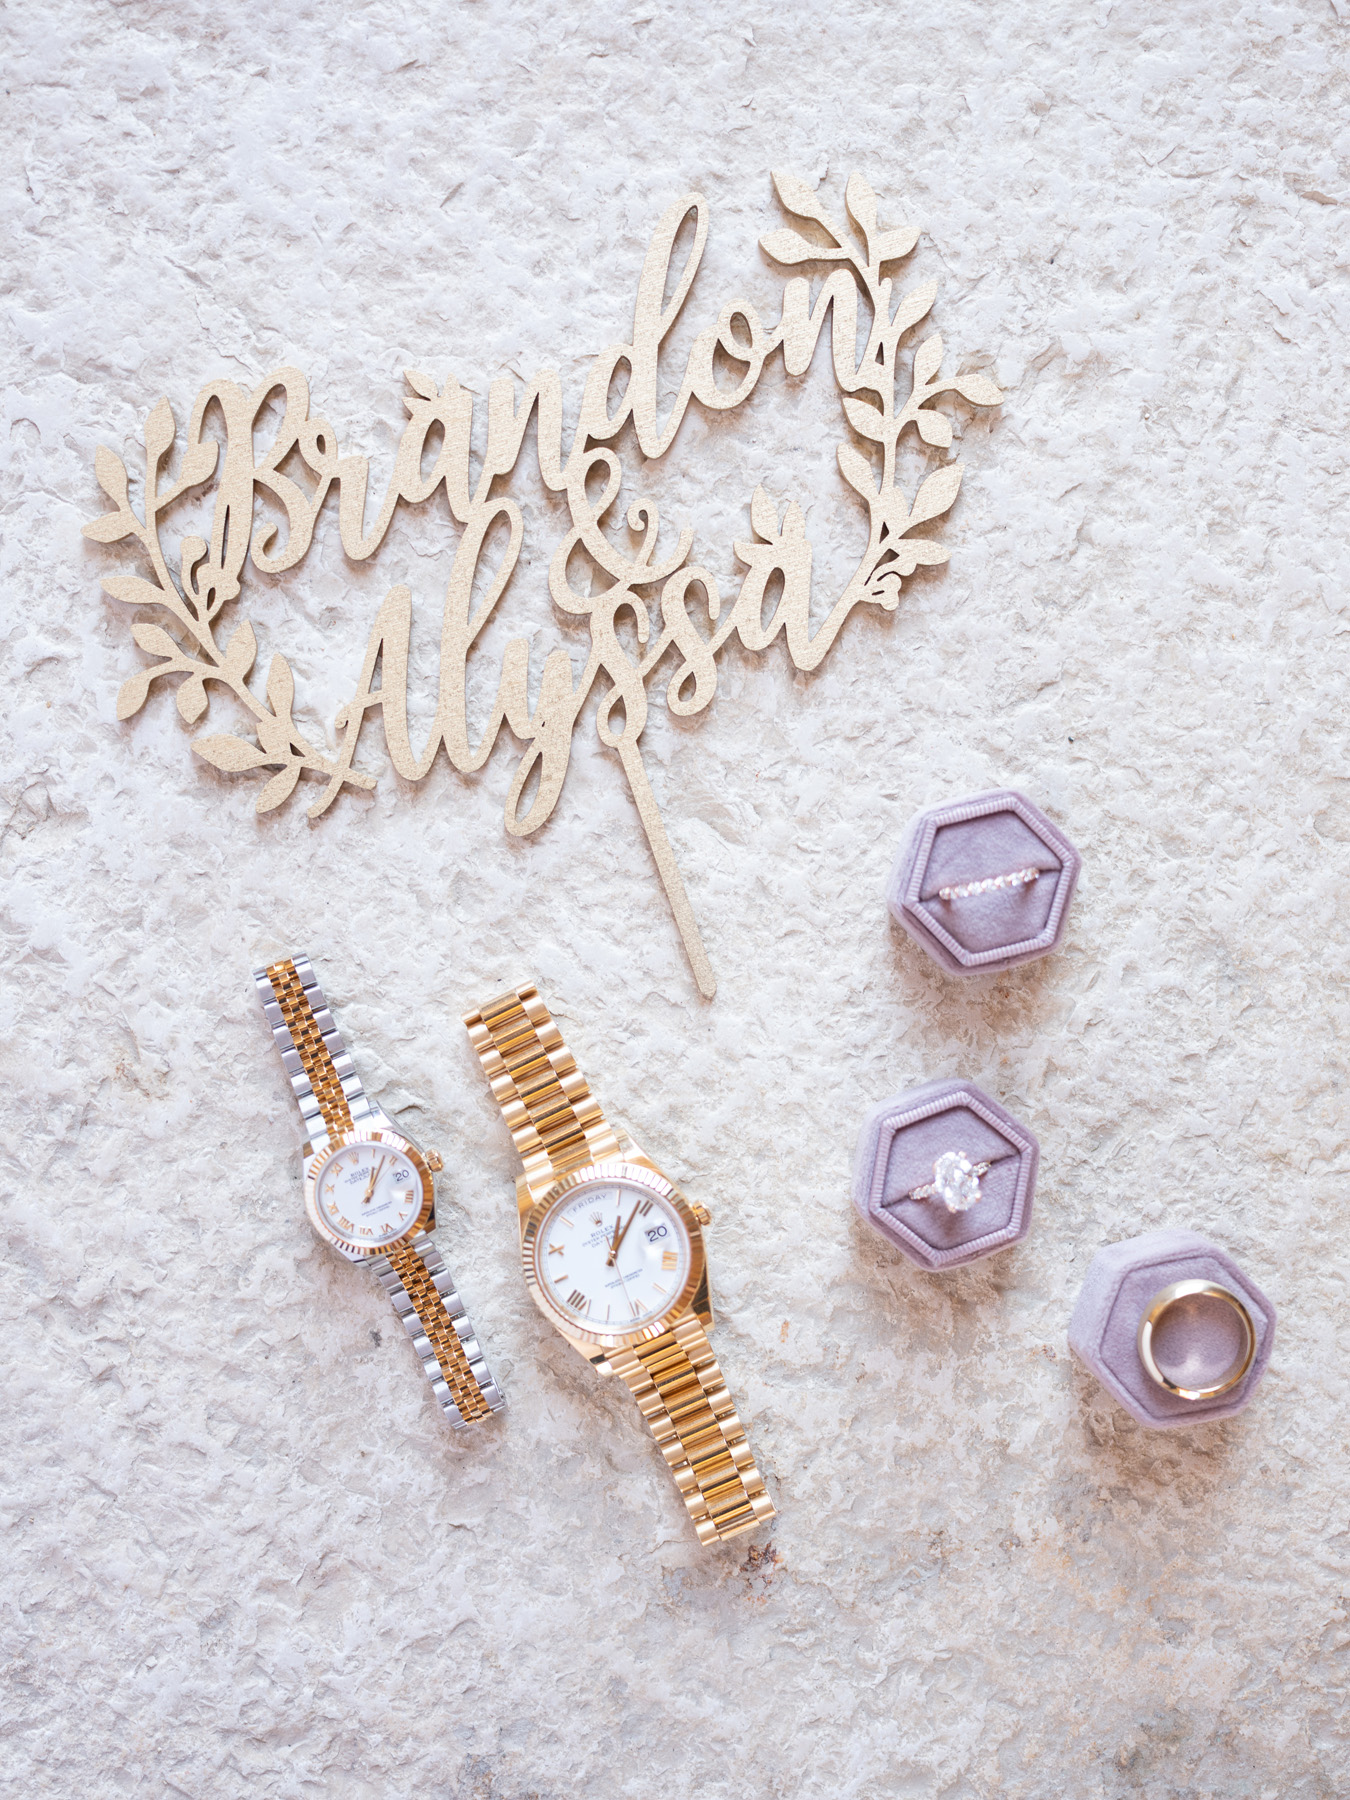 Overhead shot of the bride and groom matching watches and wedding rings